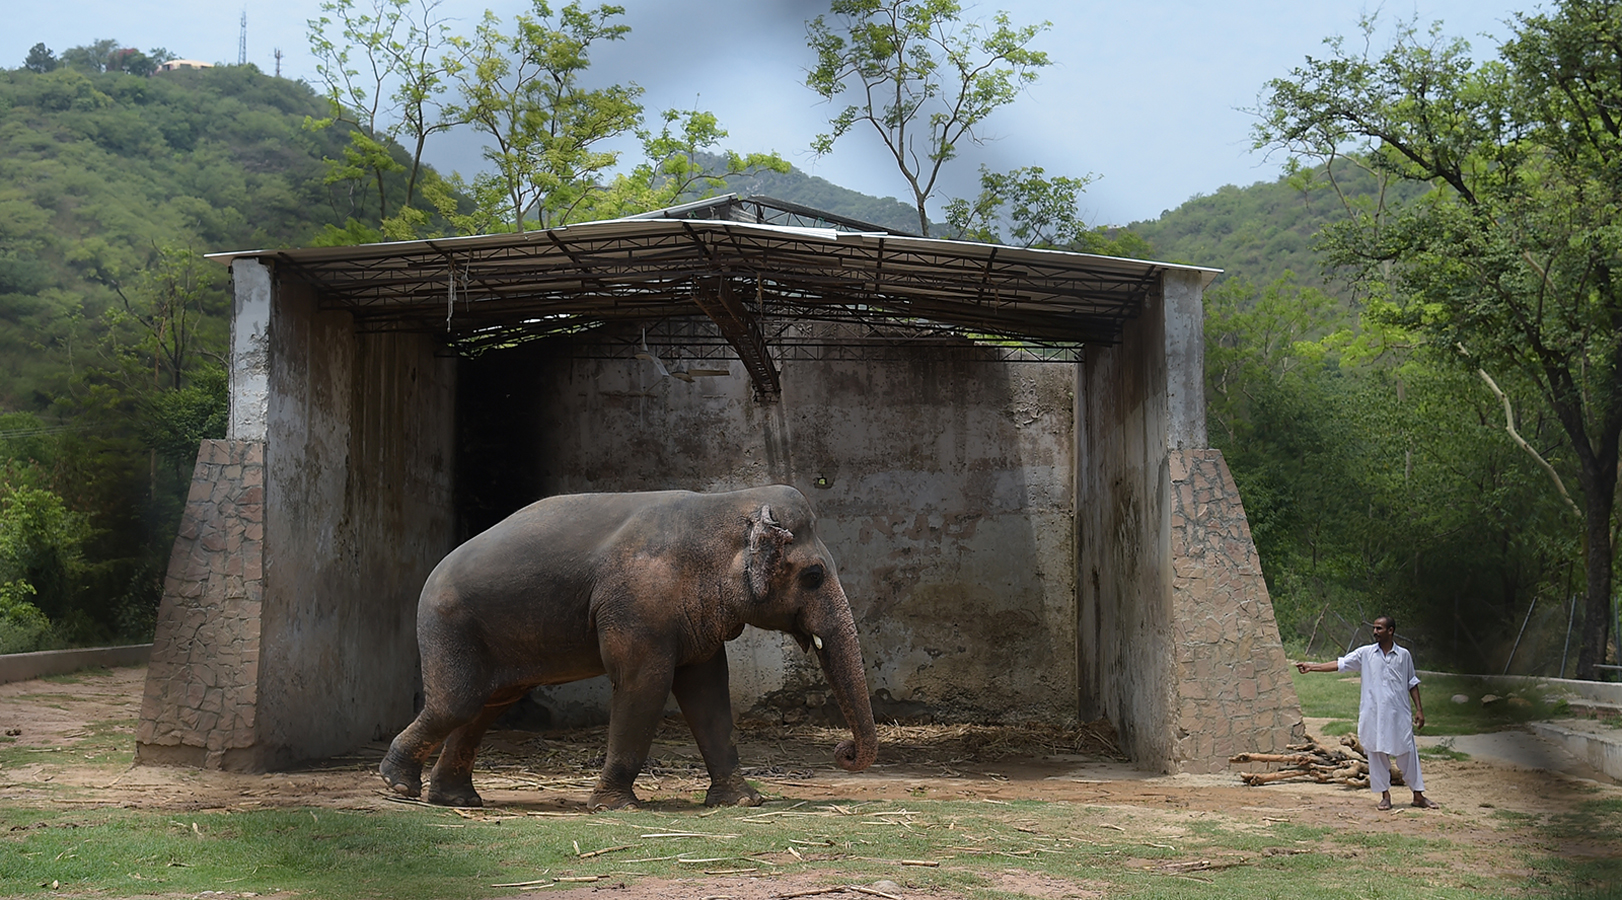 Kavaan Known As The World S Loneliest Elephant Is On His Way To Cambodia After Cher Campaign To Free Him Cnn Travel